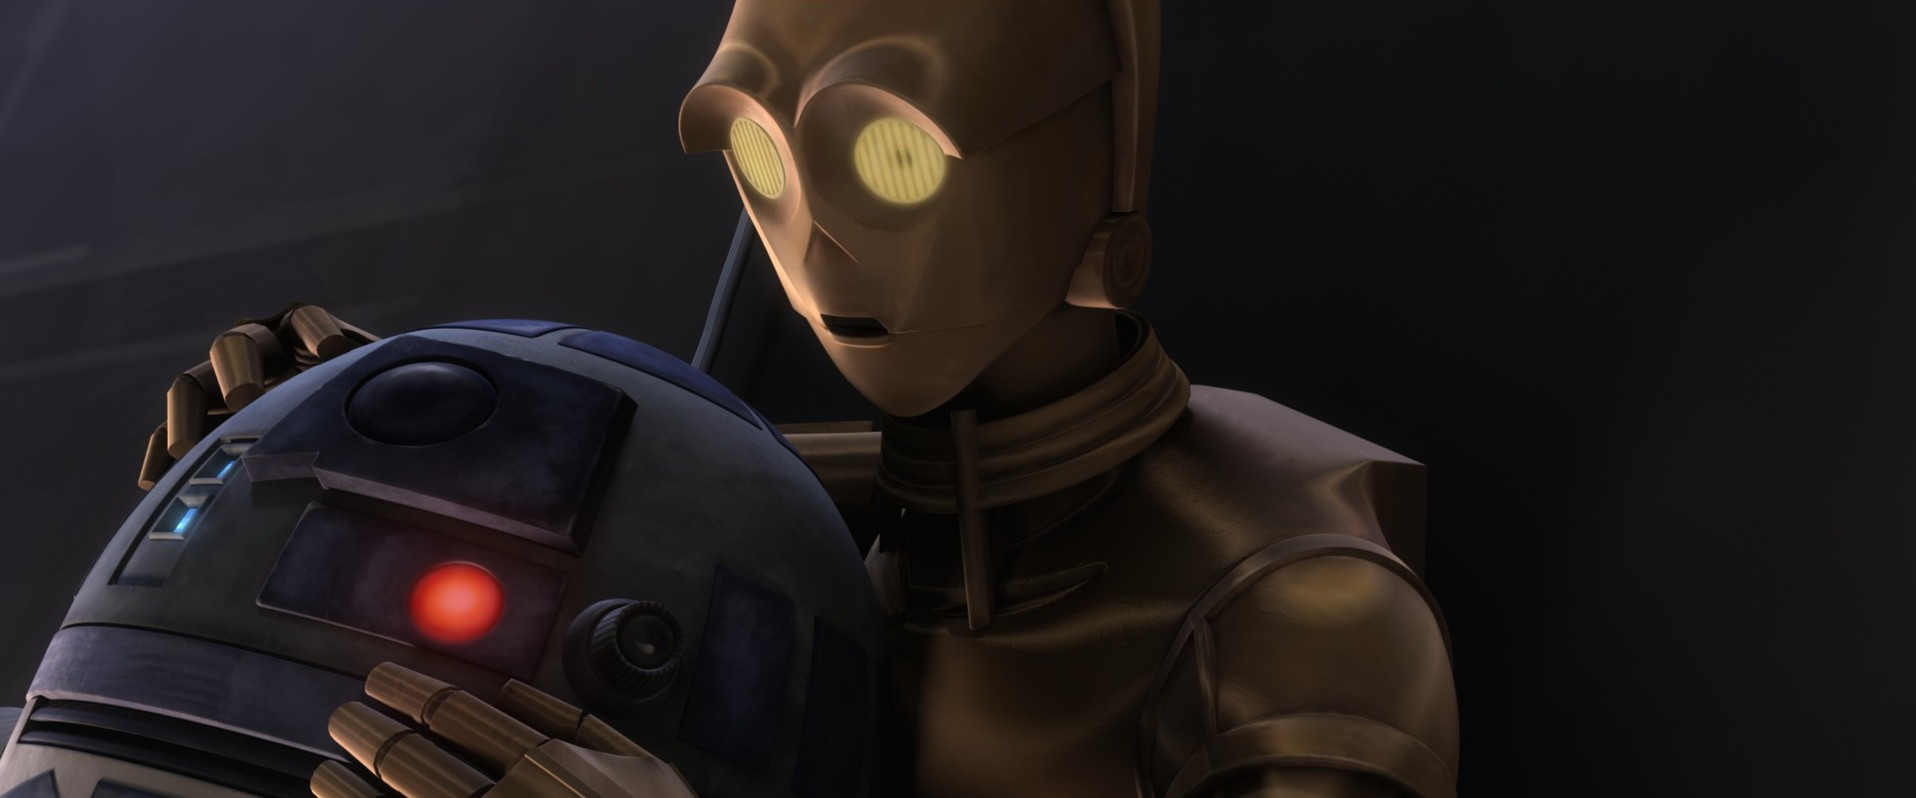 R2 and Threepio